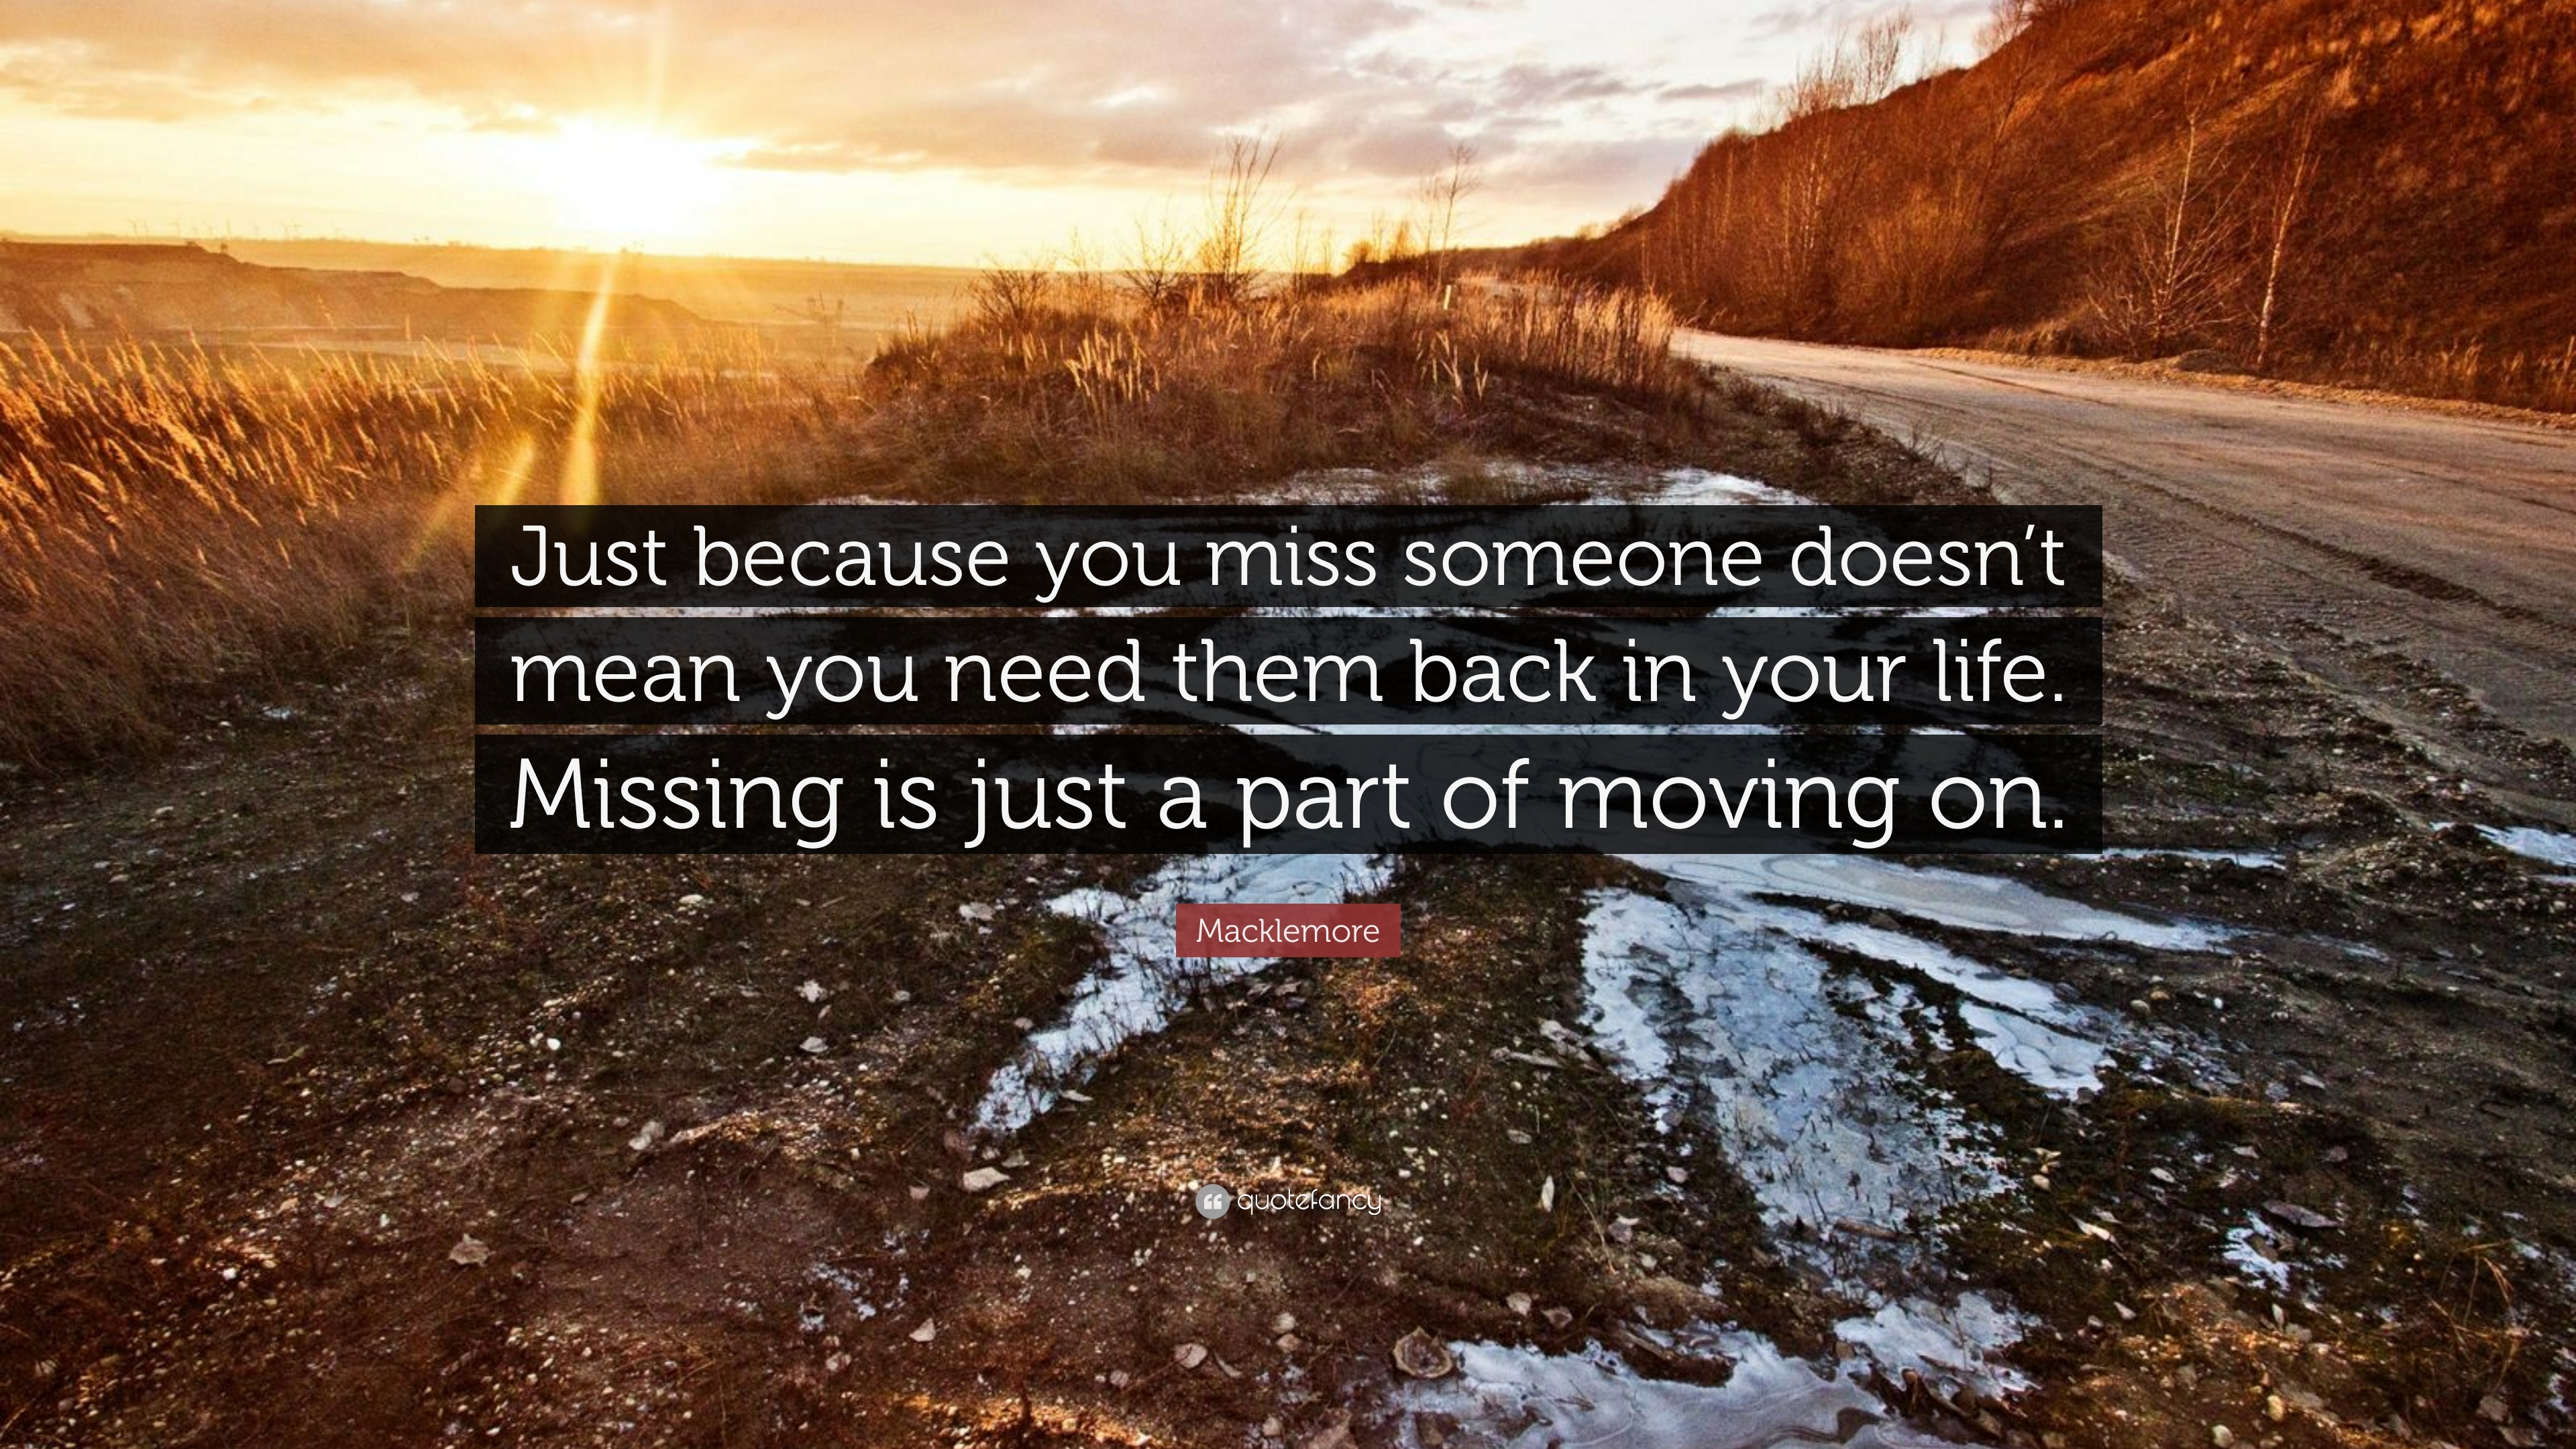 macklemore quote just because you miss someone doesnt mean you need them